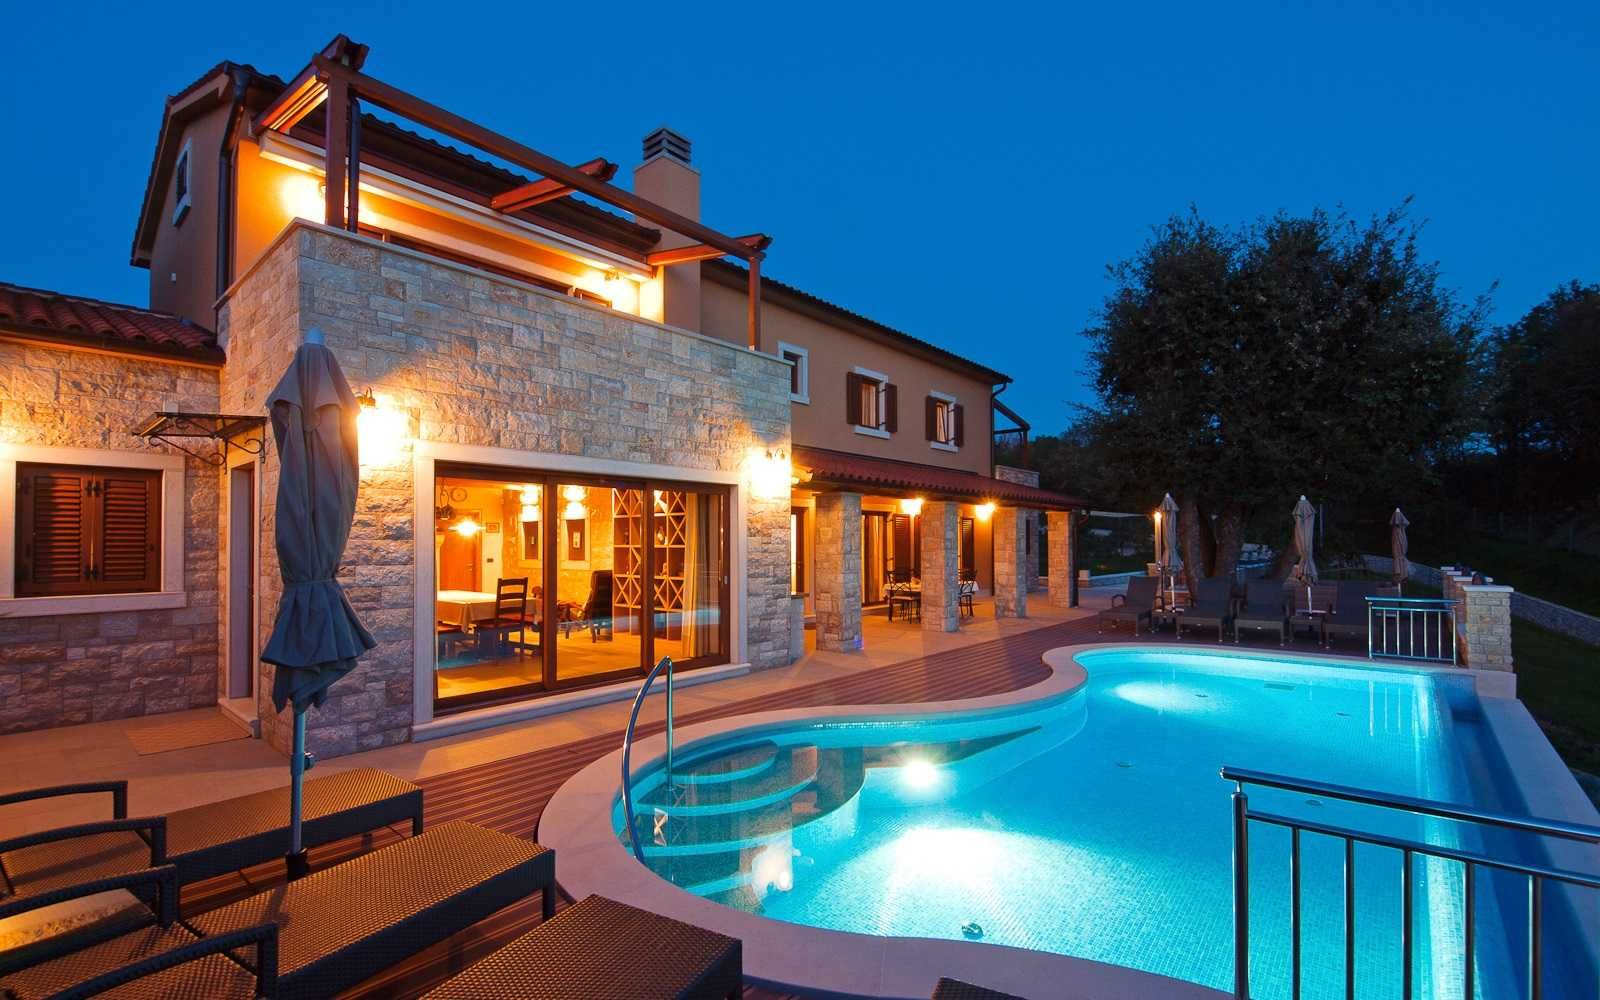 Istrien Ferienhaus Mit Pool Am Strand Istria Villas Croatia Luxury Villa Istria Estate With